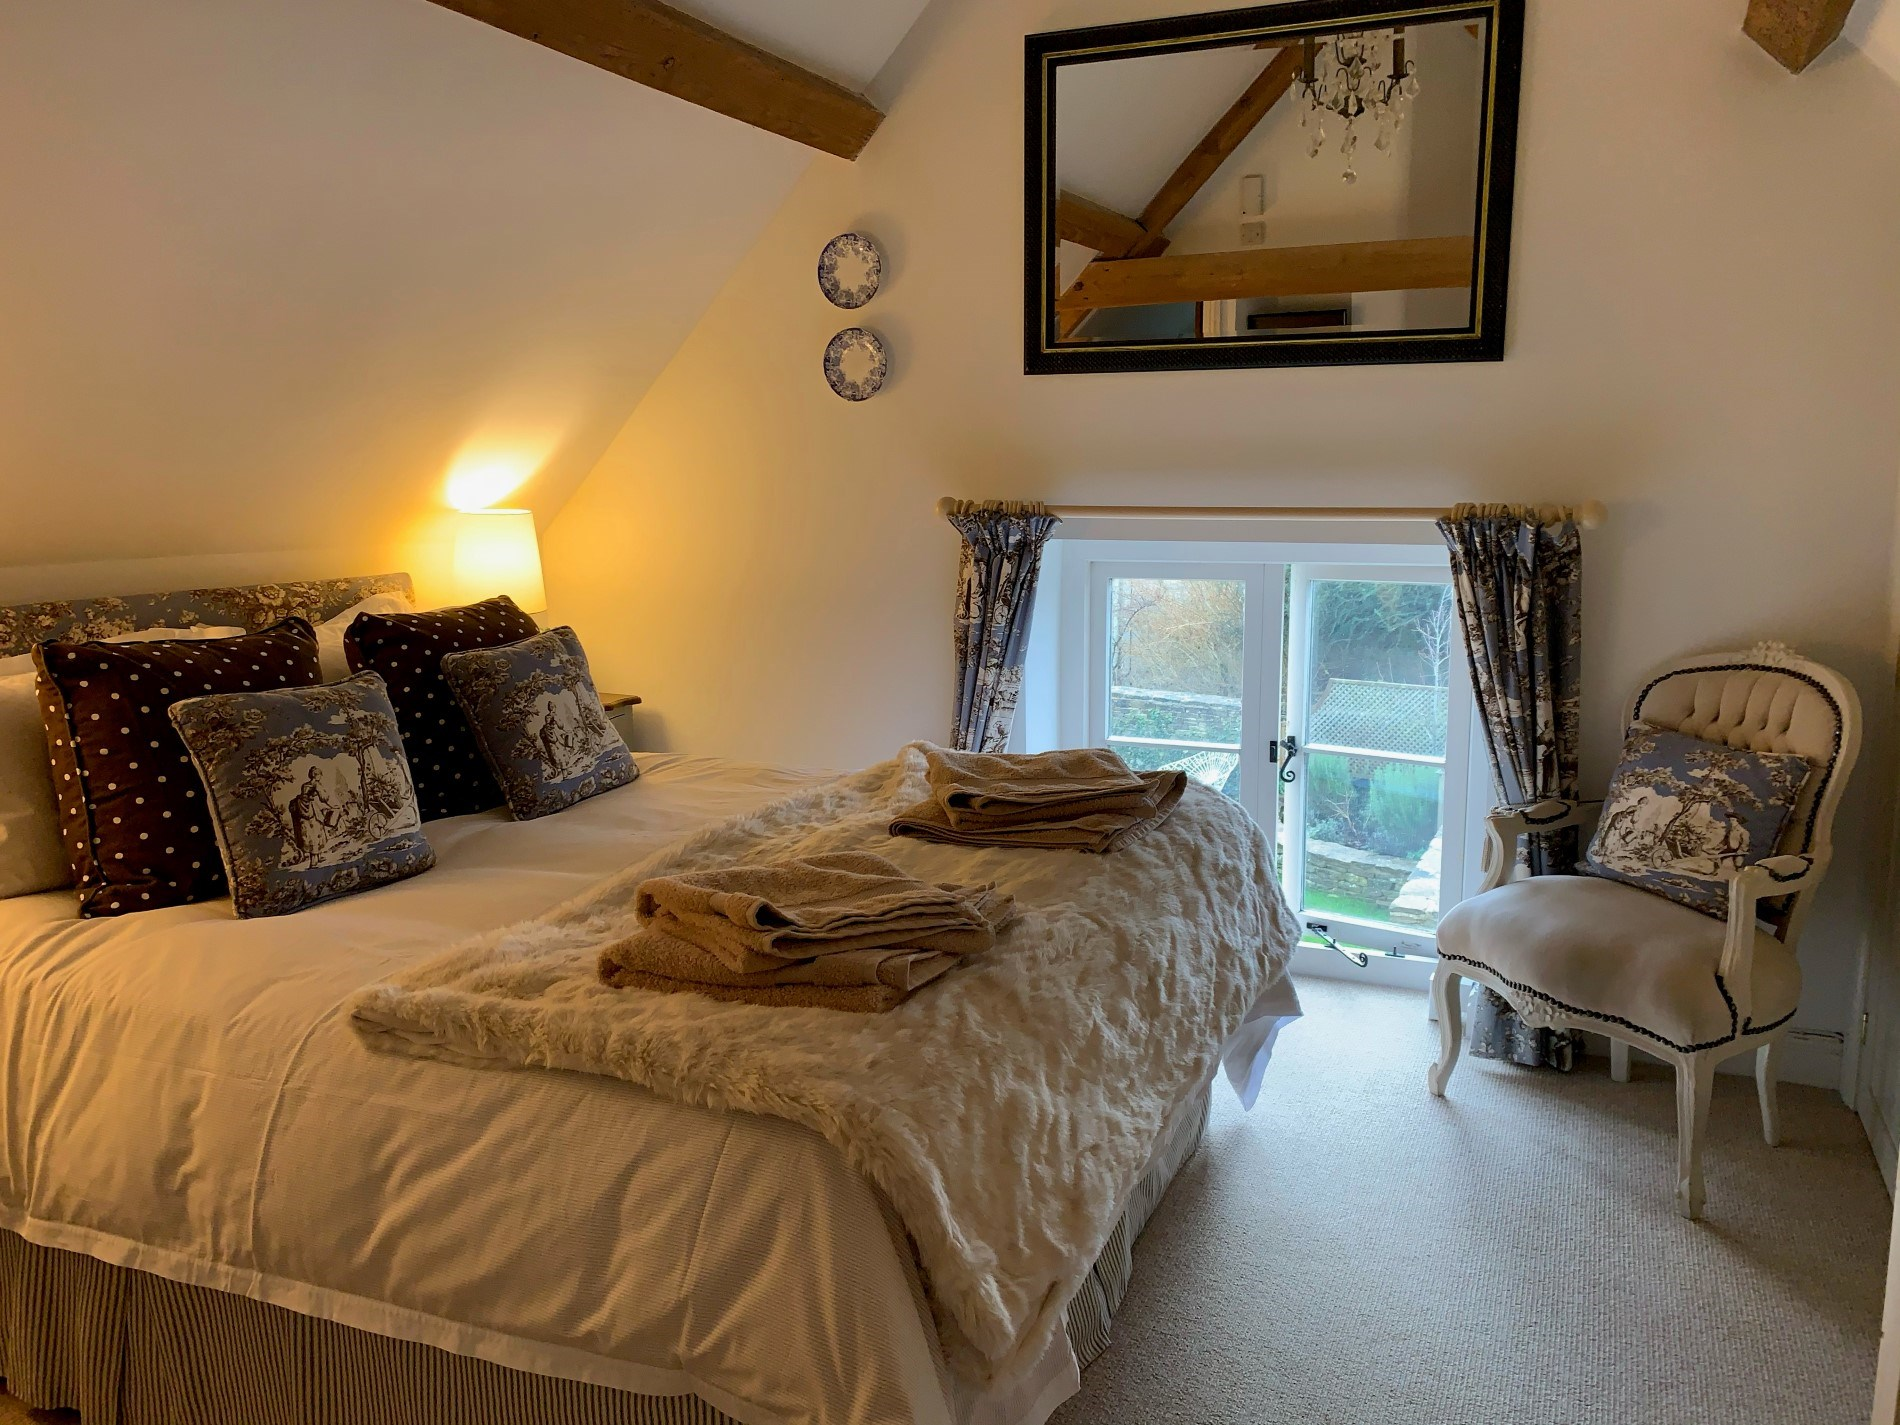 1 Bedroom Cottage in Cirencester, Heart of England